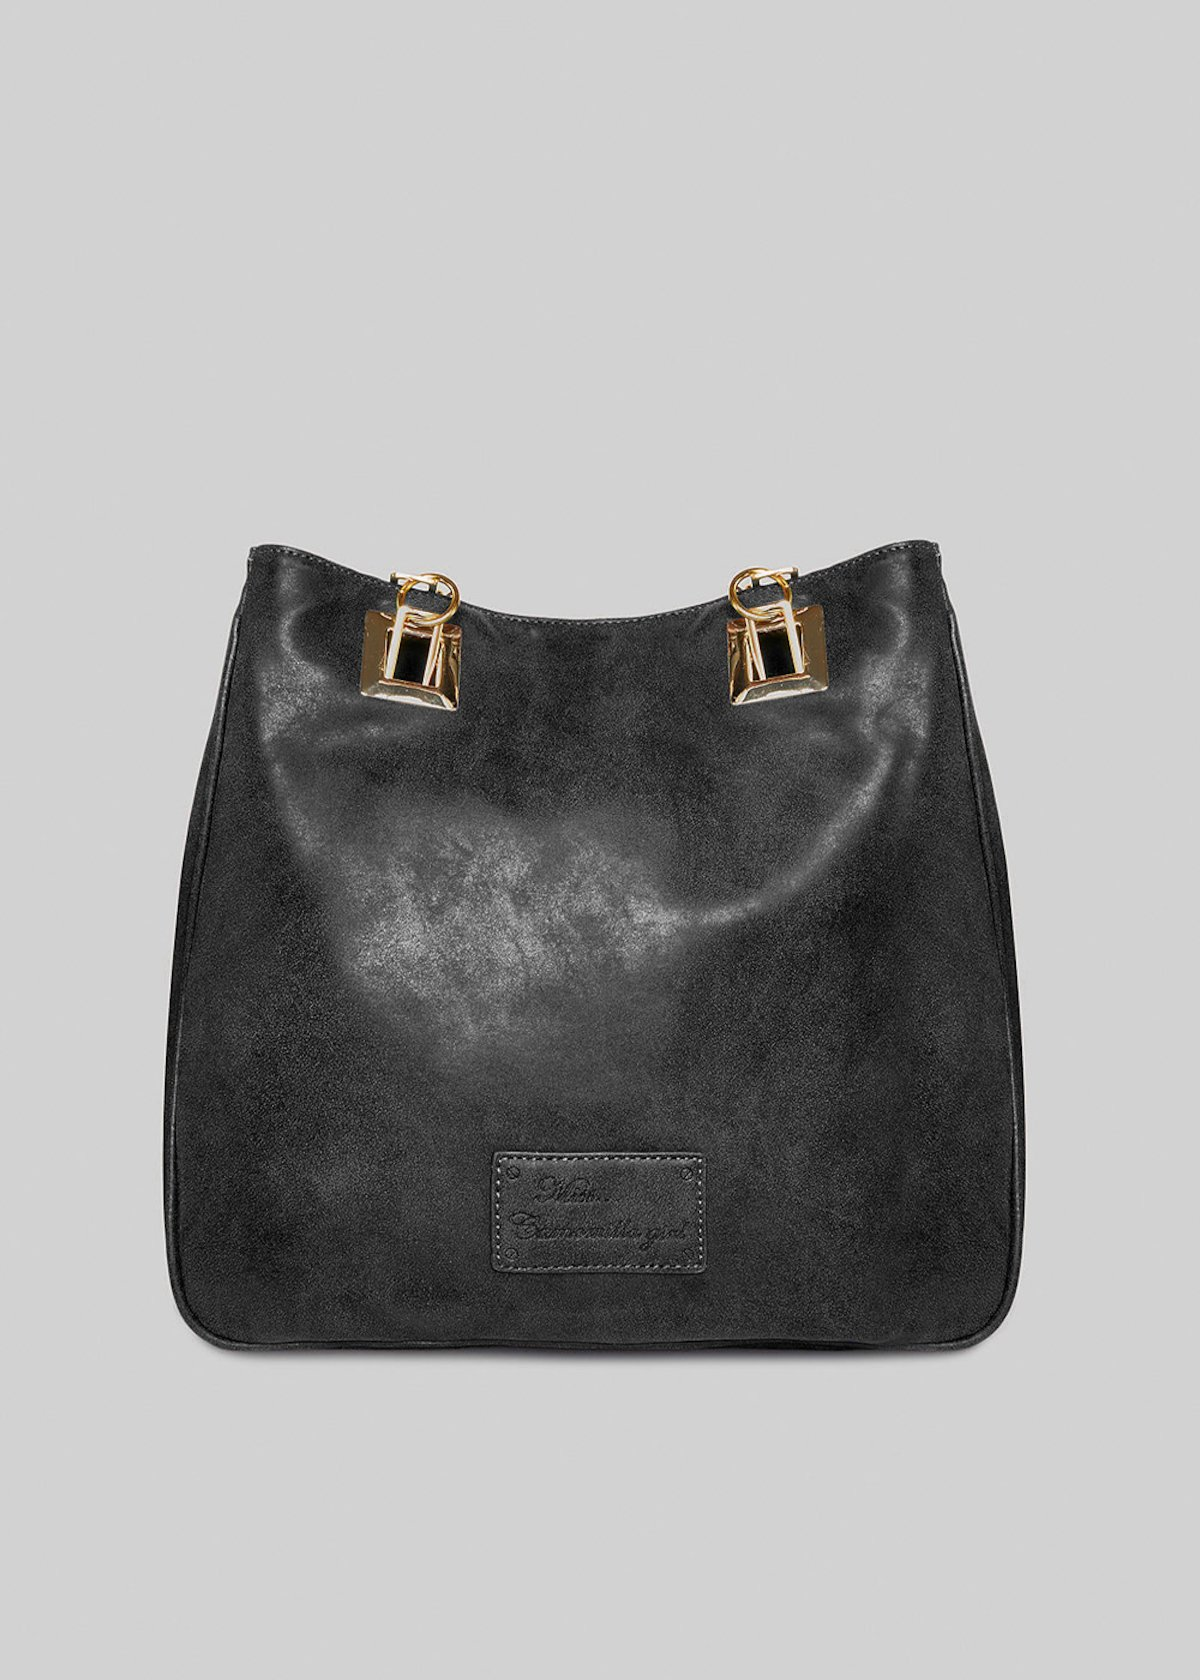 Mmissbruss faux leather shopping bag with gold square eyelets - Black